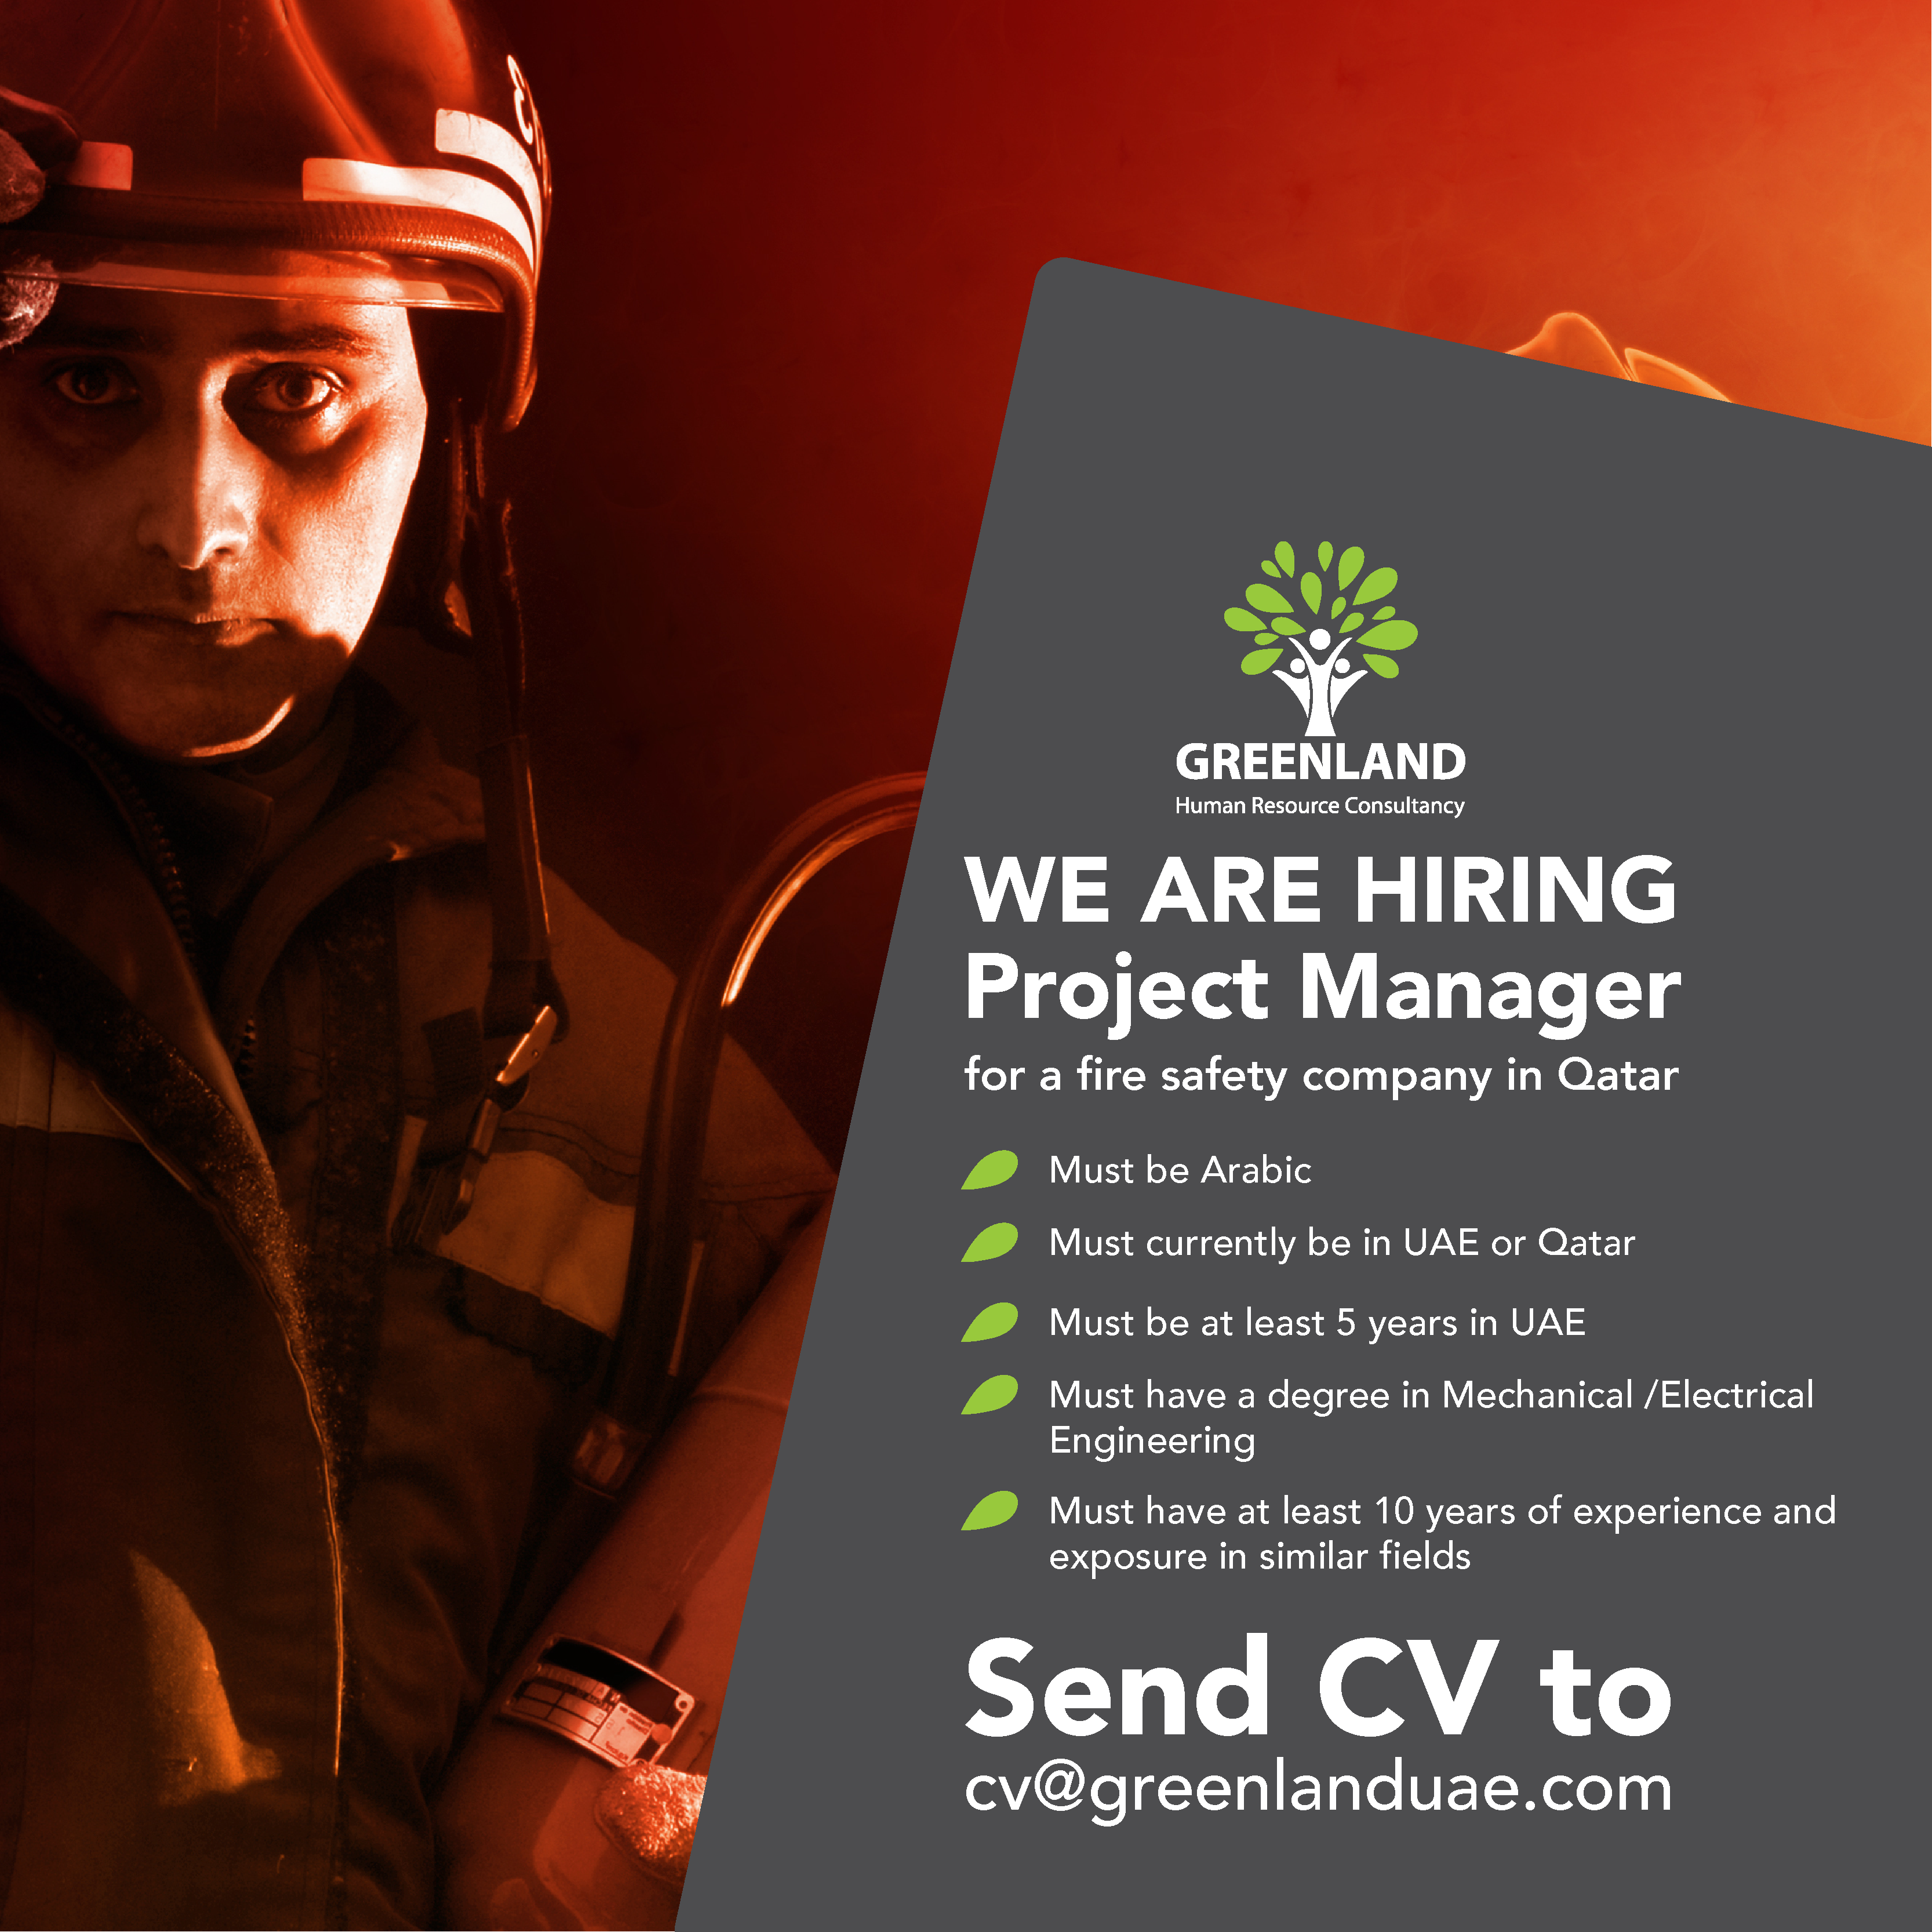 We are currently hiring a Project Manager for a fire